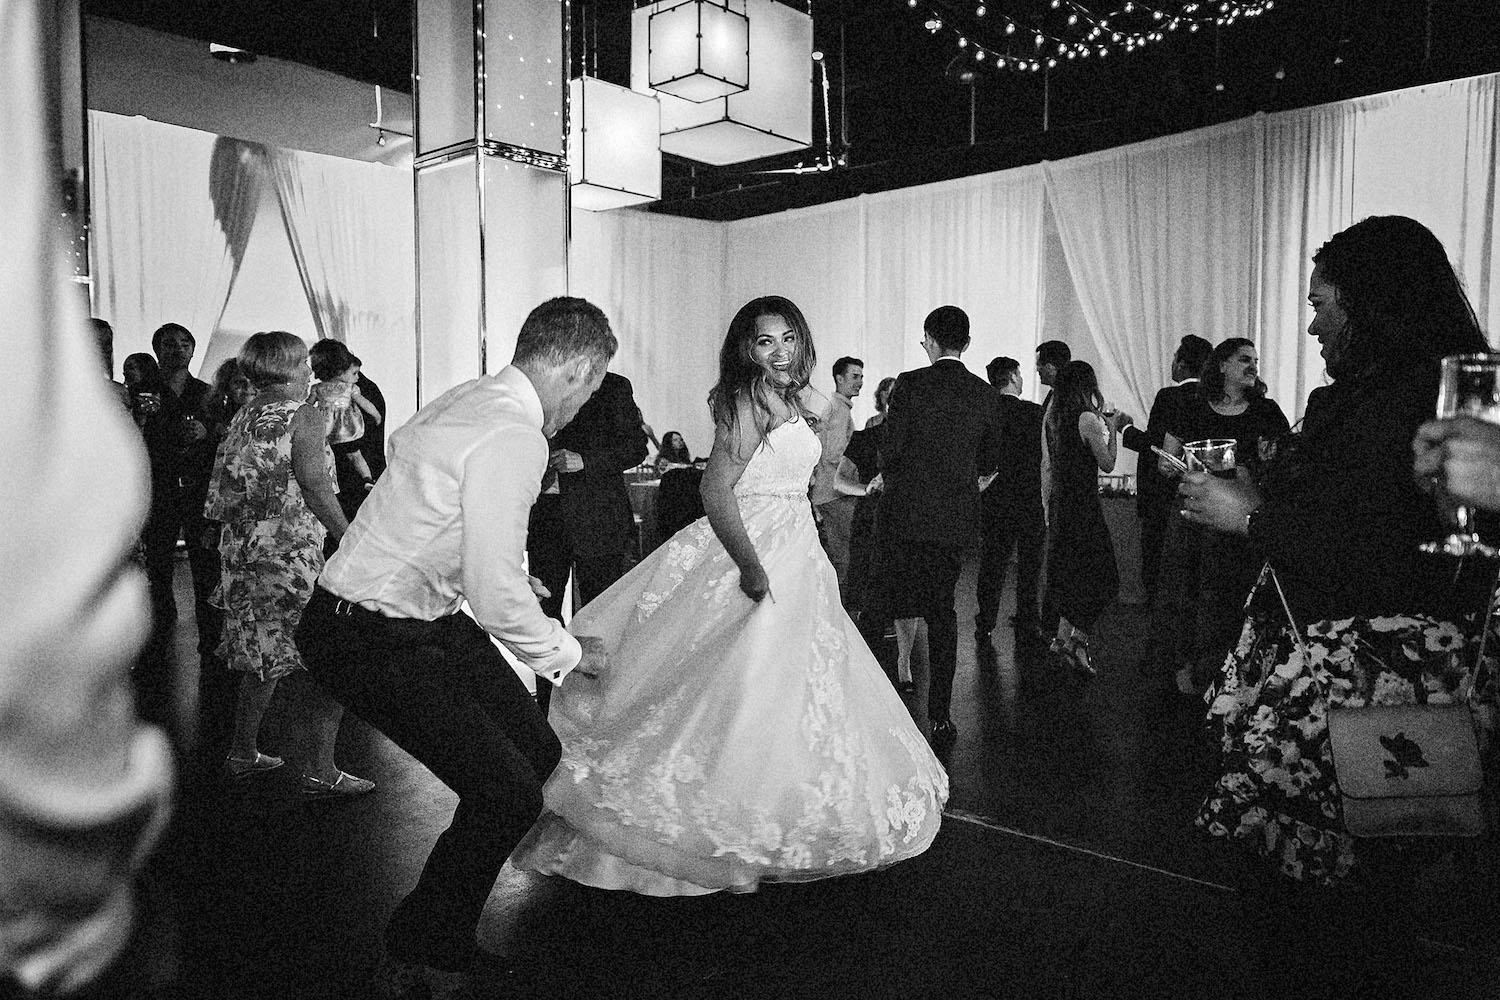 690496953e34-2L2A9881_Valeria_and_Juliette_Photography_Mary_and_Alex_Wedding.jpg